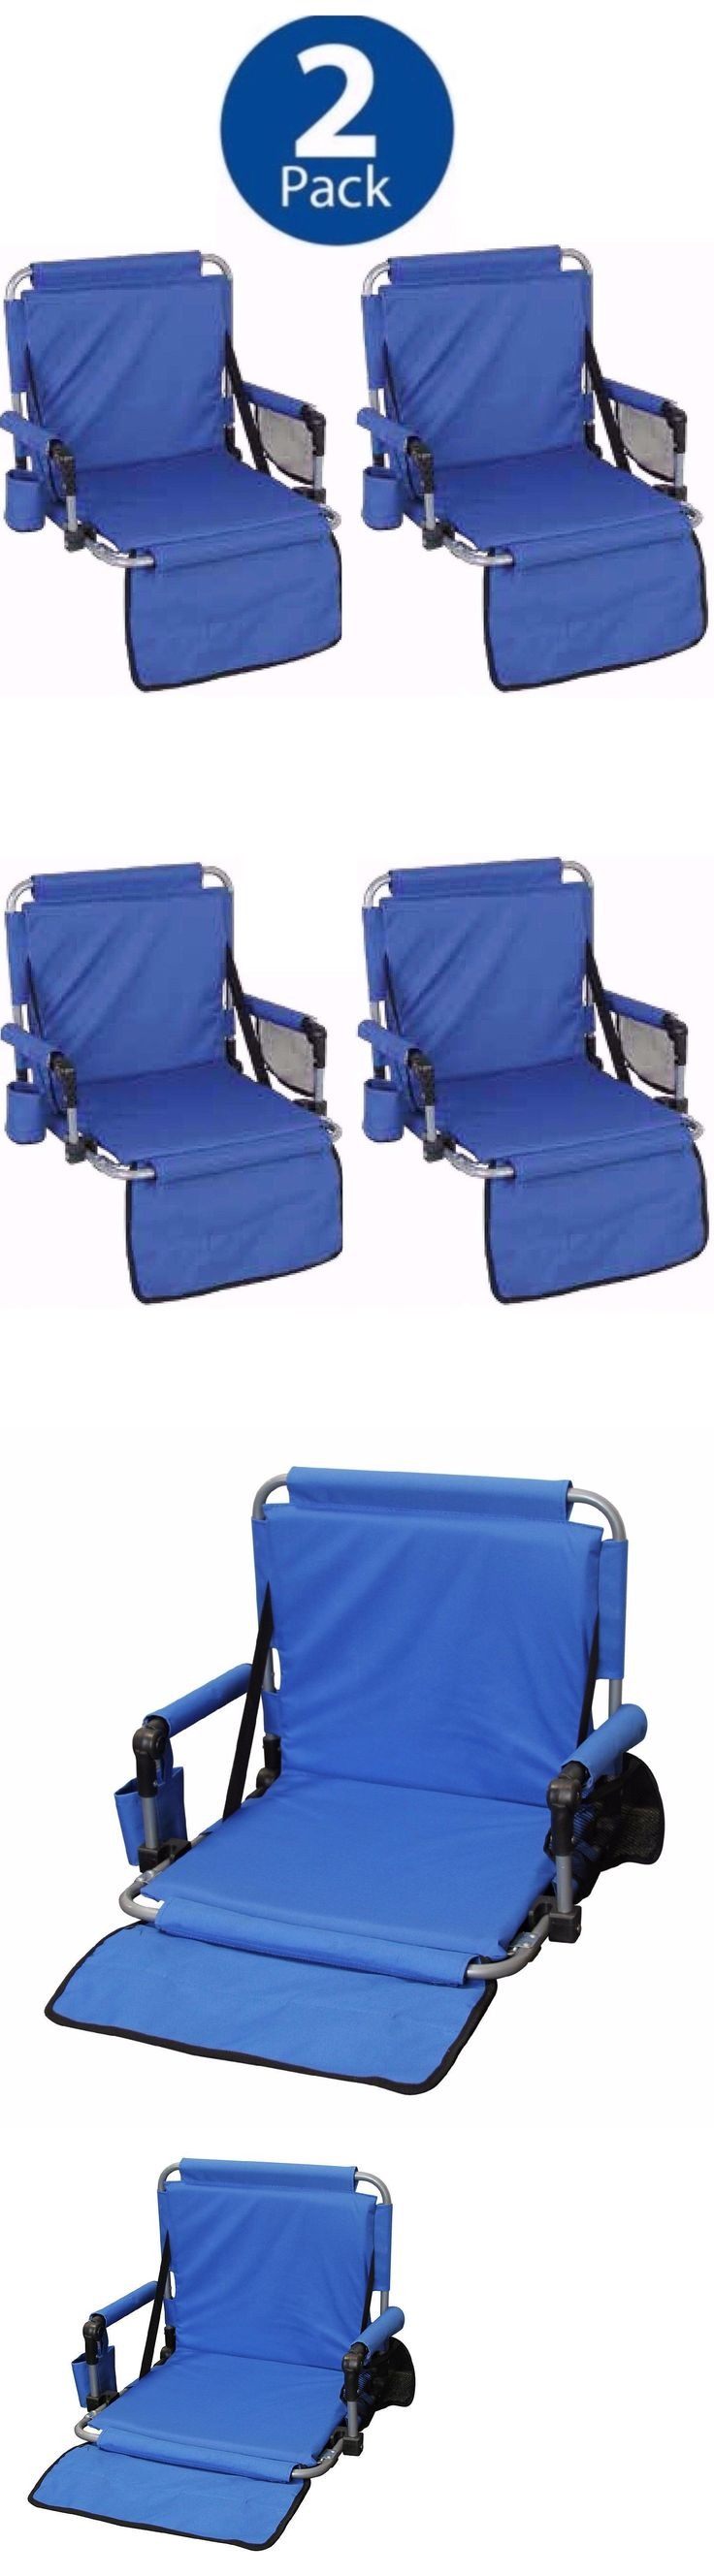 Other Outdoor Sports 2 Portable Folding Stadium Chairs Set